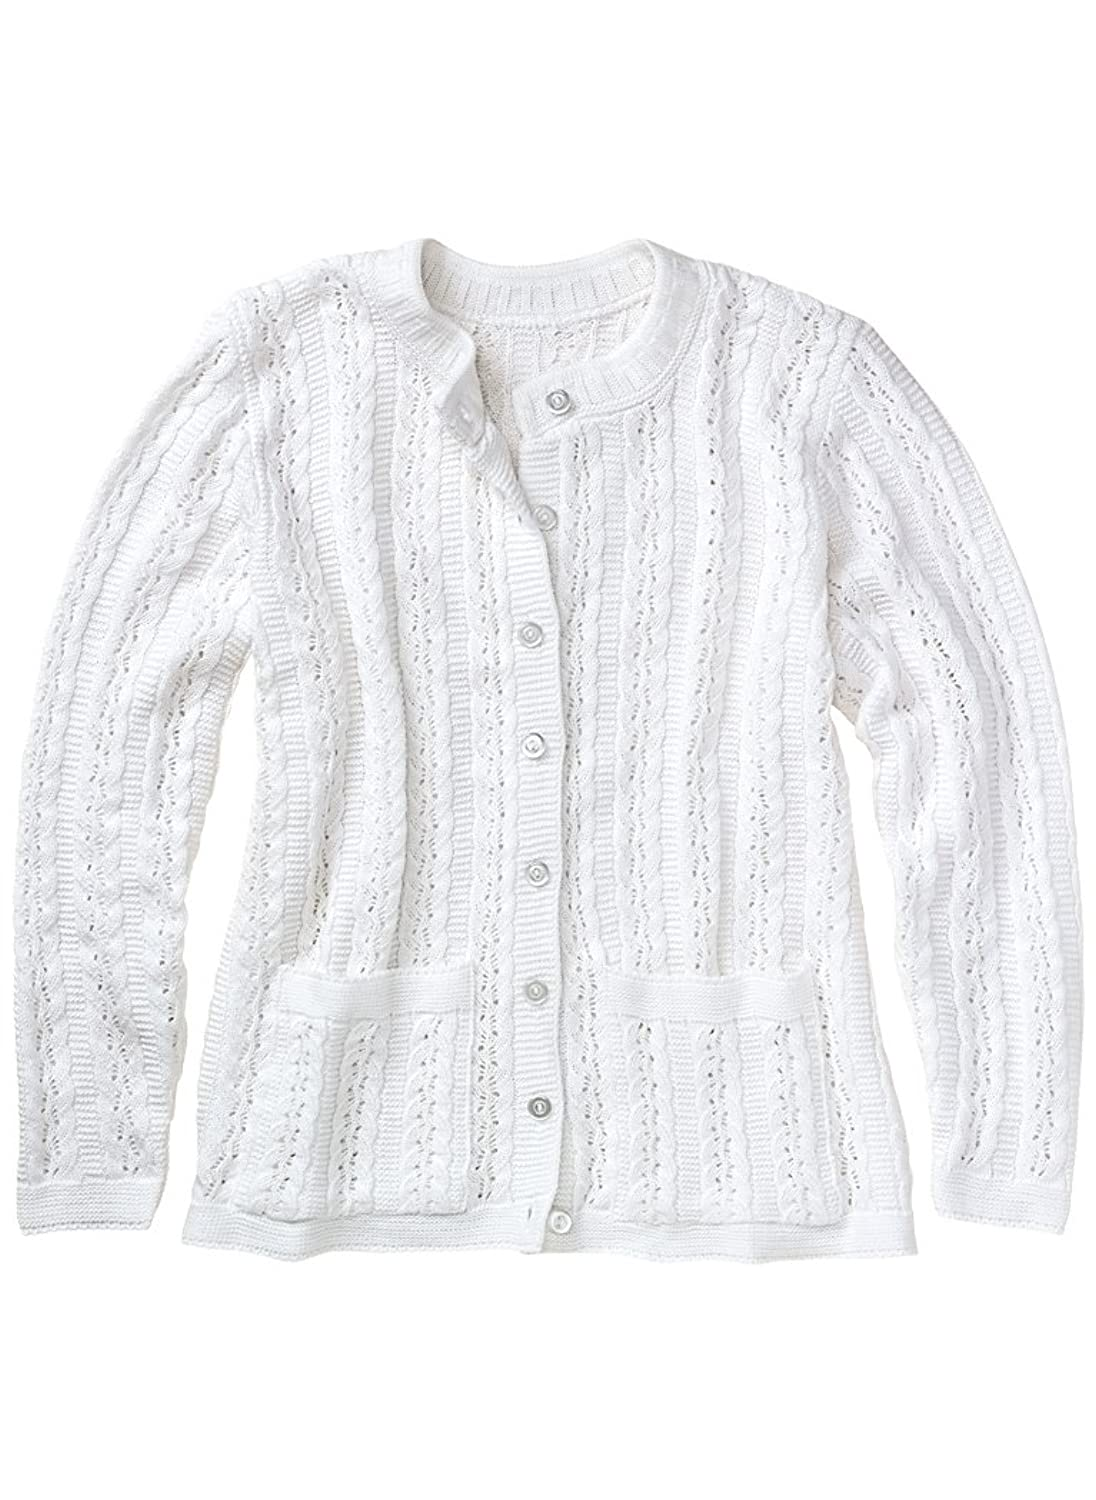 1940s Style Sweaters and Knit Tops Cable Stitch Cardigan $29.99 AT vintagedancer.com